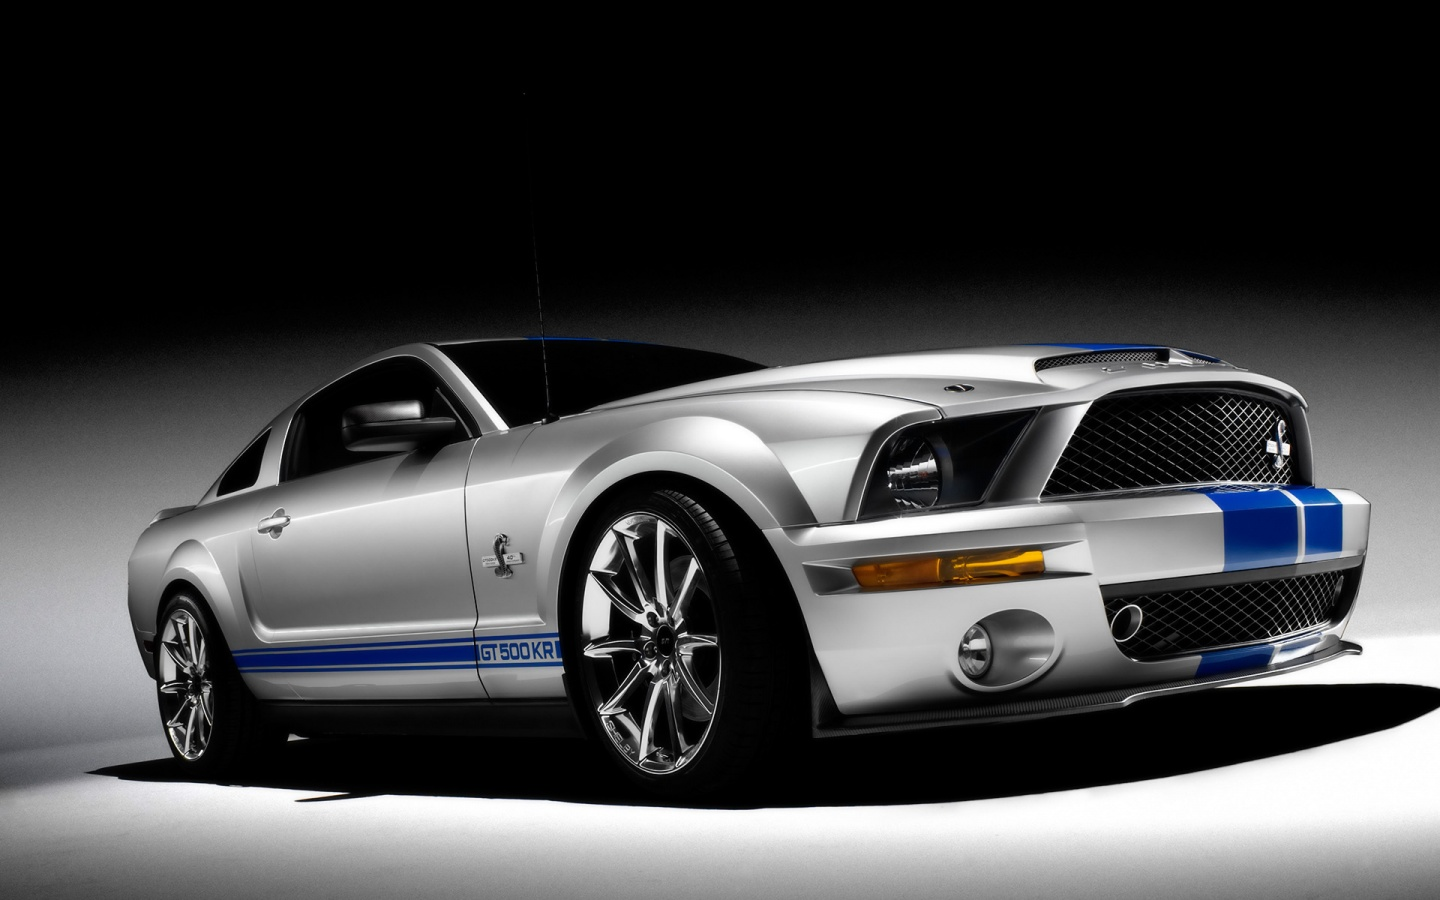 Mustang Shelby Gt500kr Resnick S City